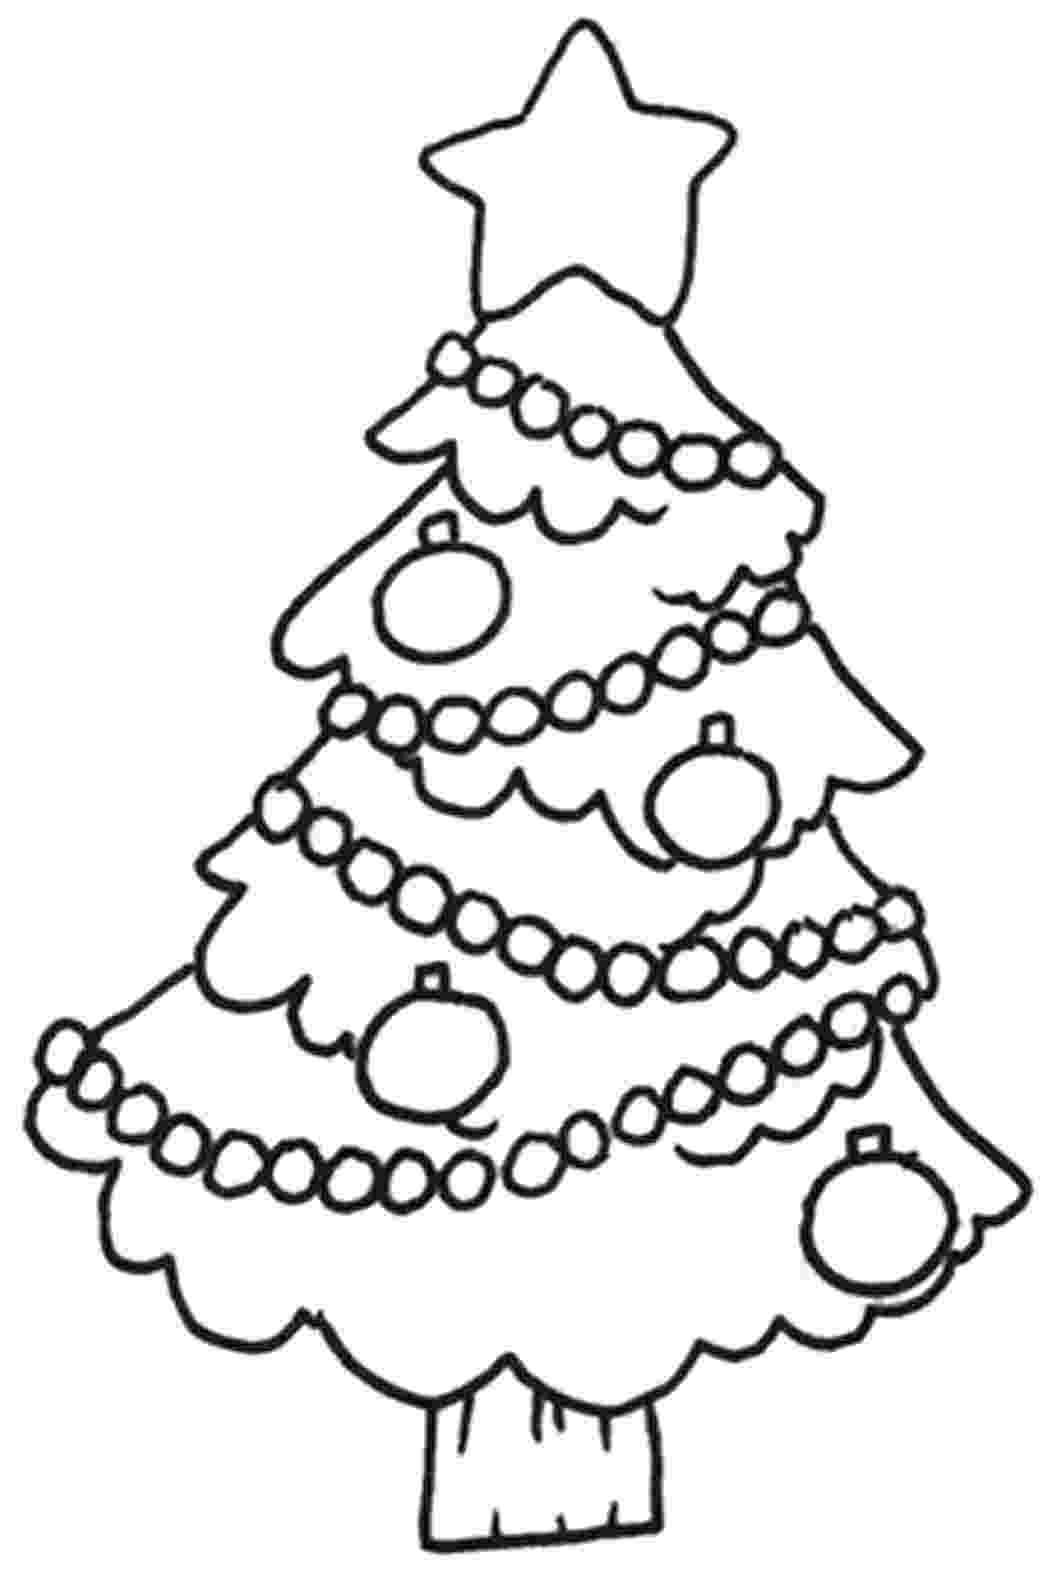 colouring pages christmas free free christmas coloring pages retro angels the christmas colouring free pages